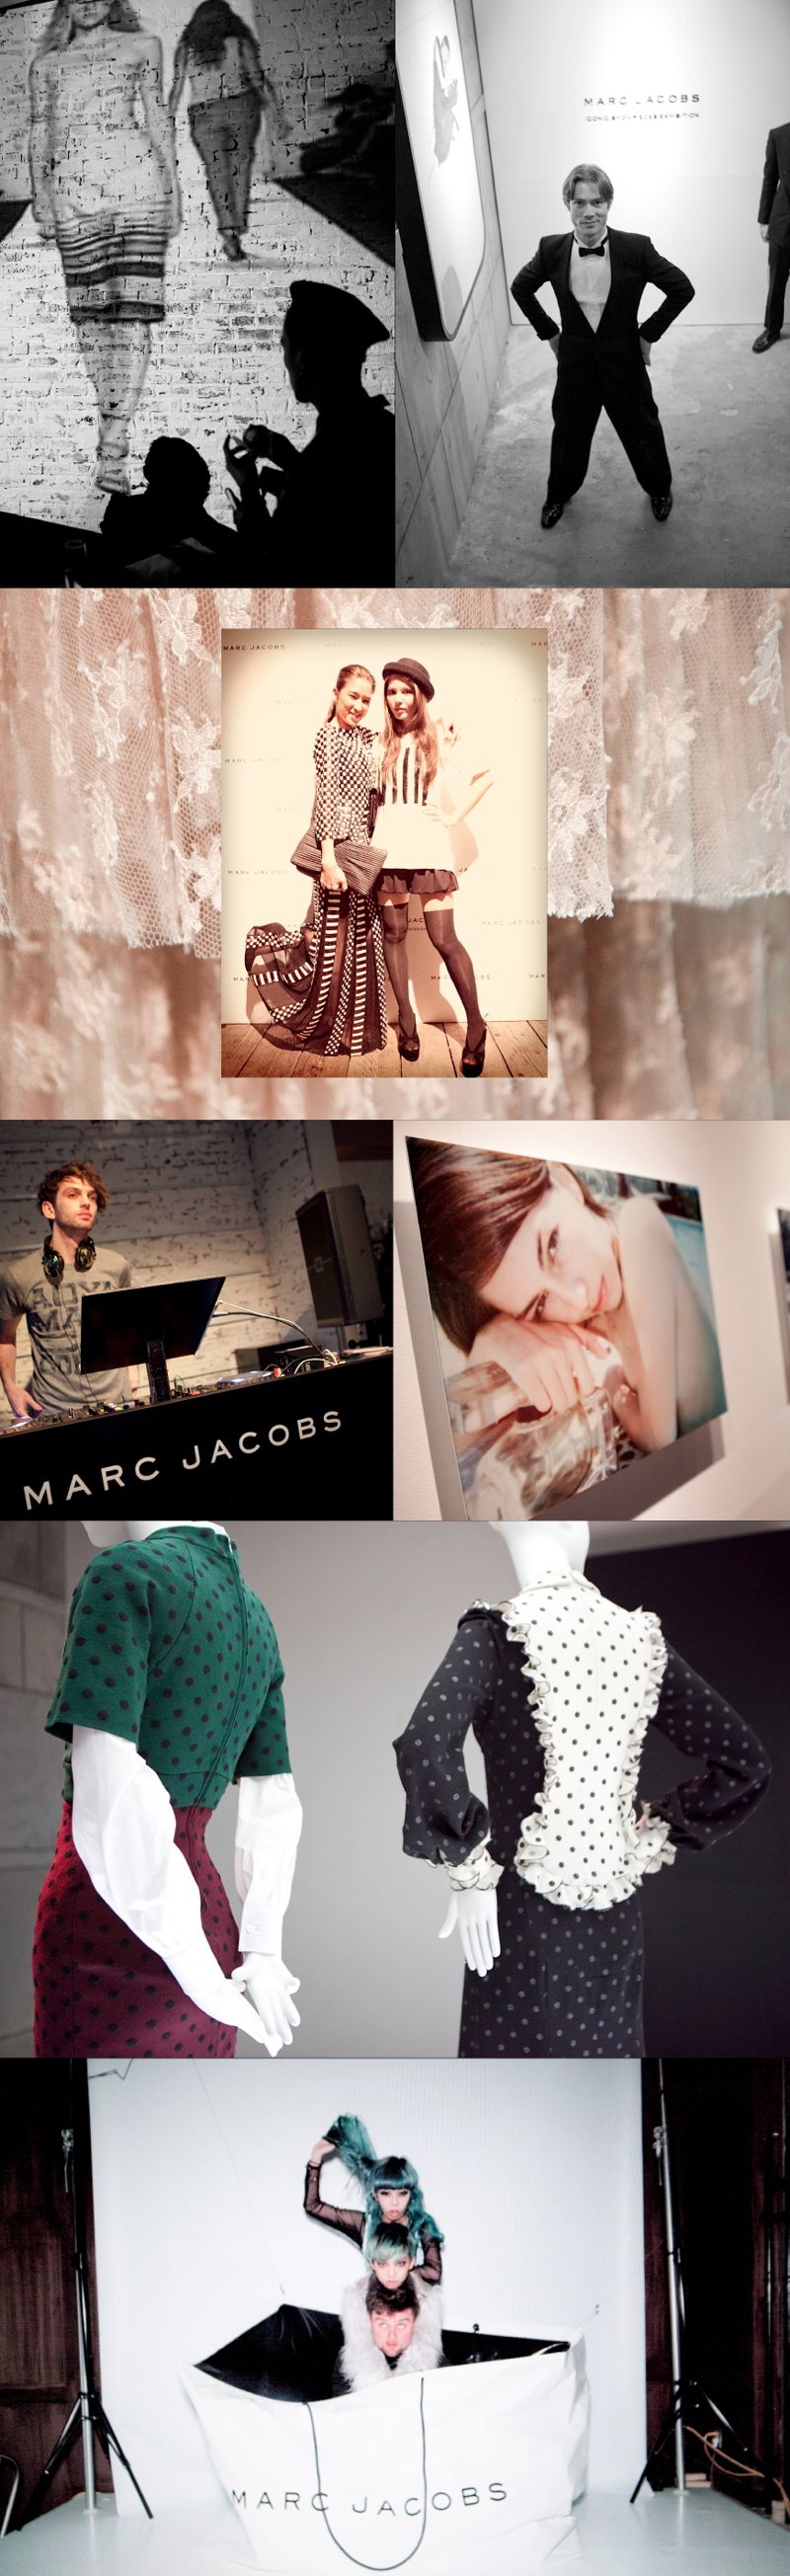 Marc Jacobs Iconic Showpieces Exhibition IDOL Aoyama Tokyo Dandy4